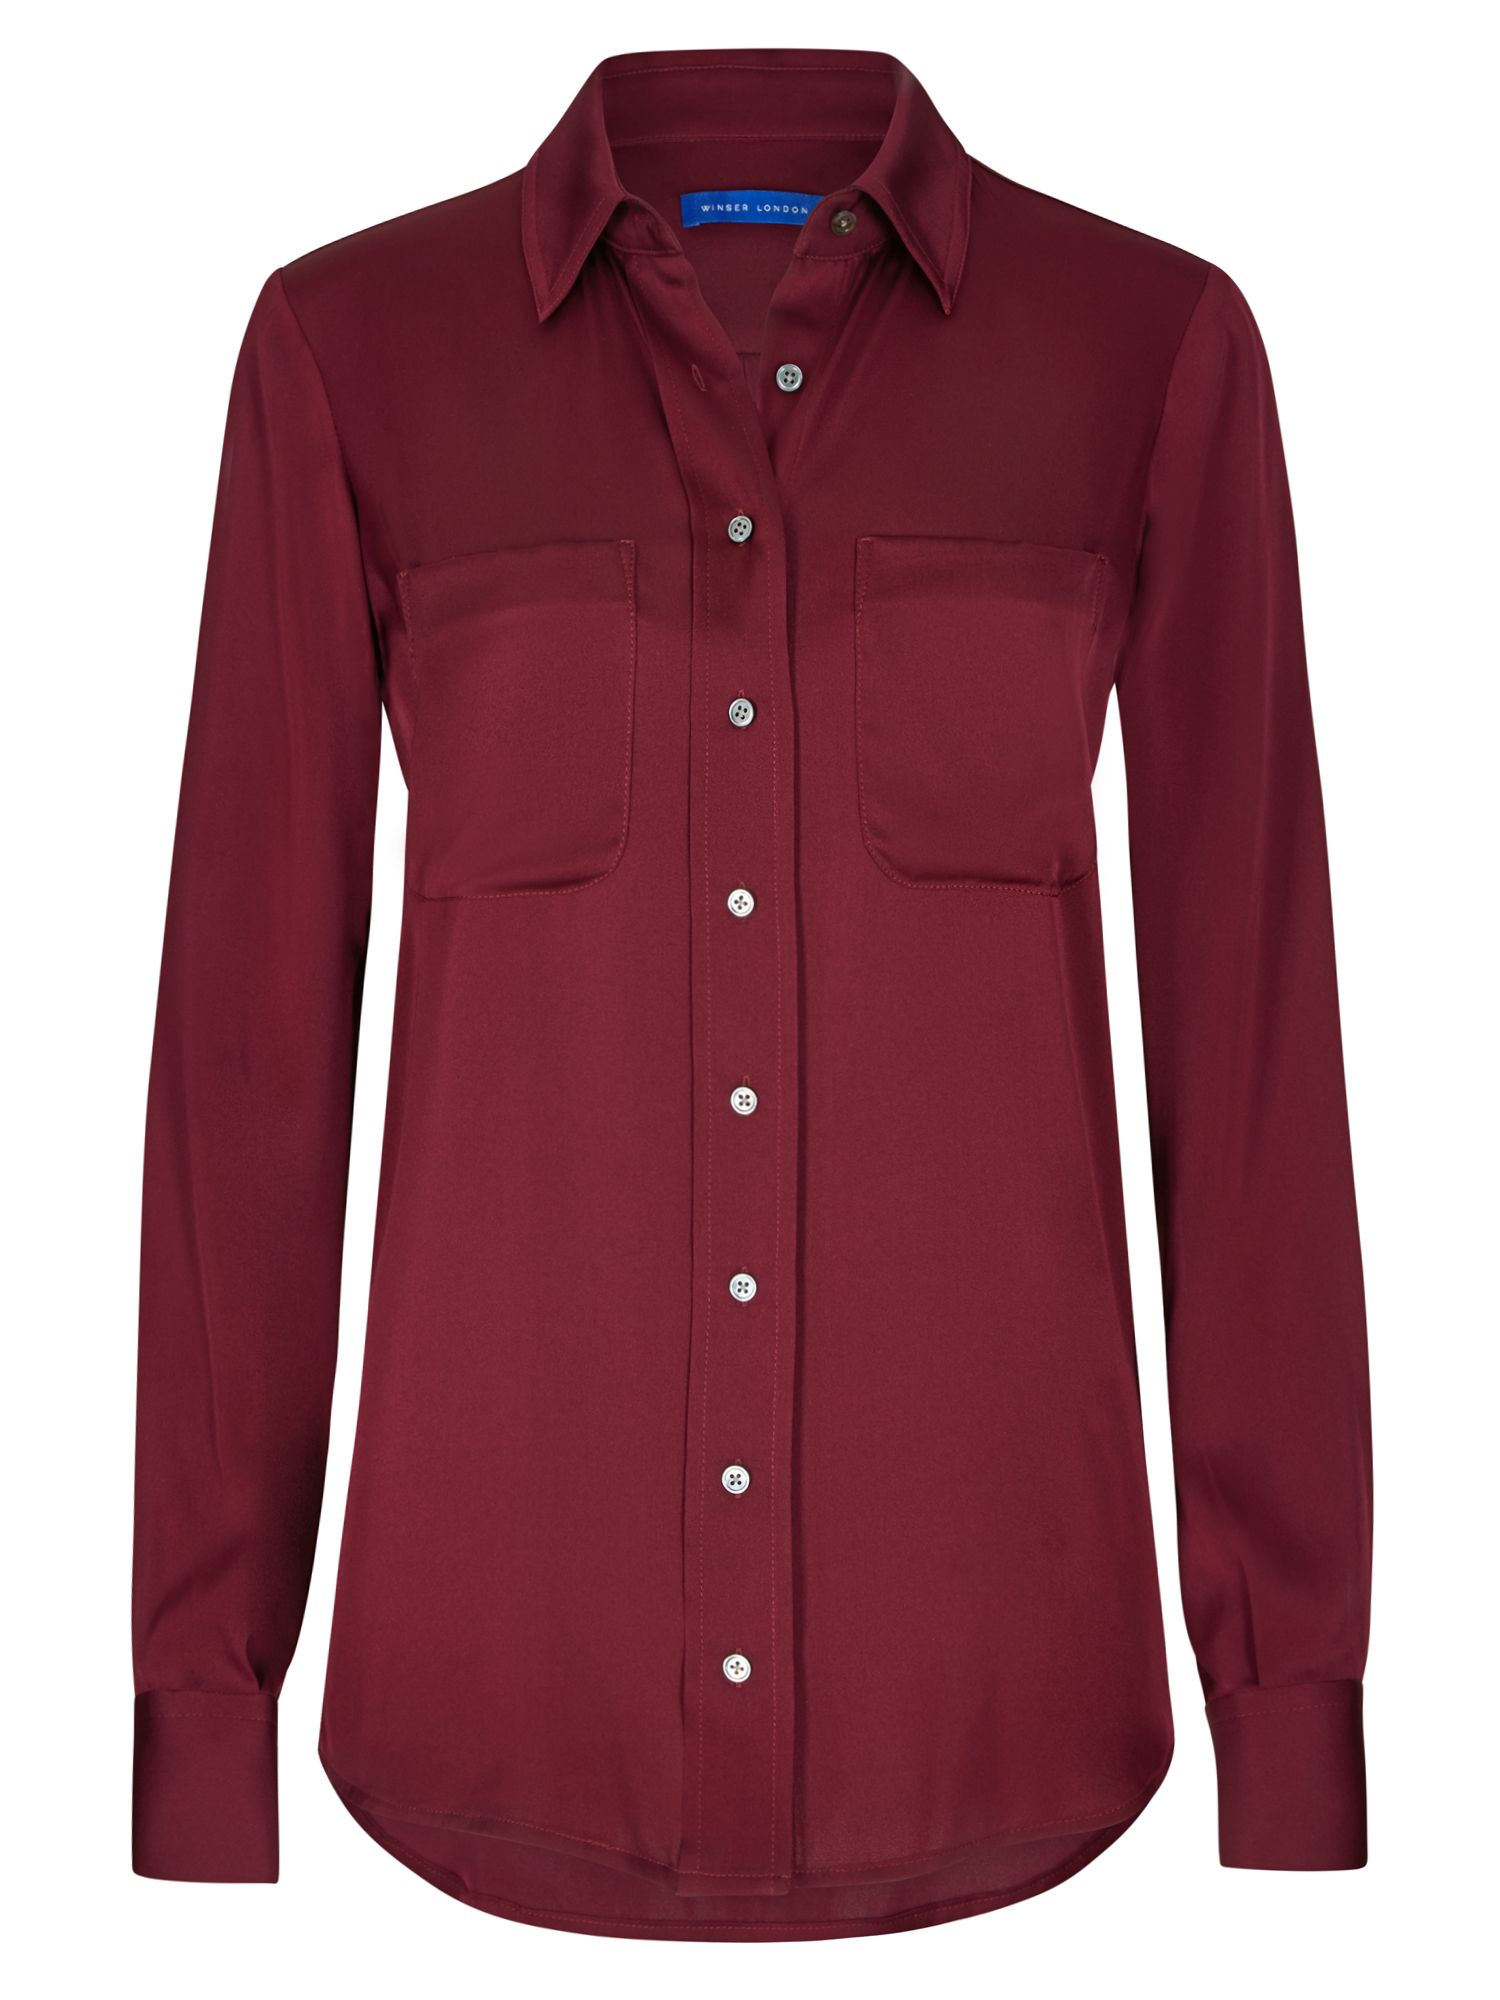 Winser London Silk Shirt, Red